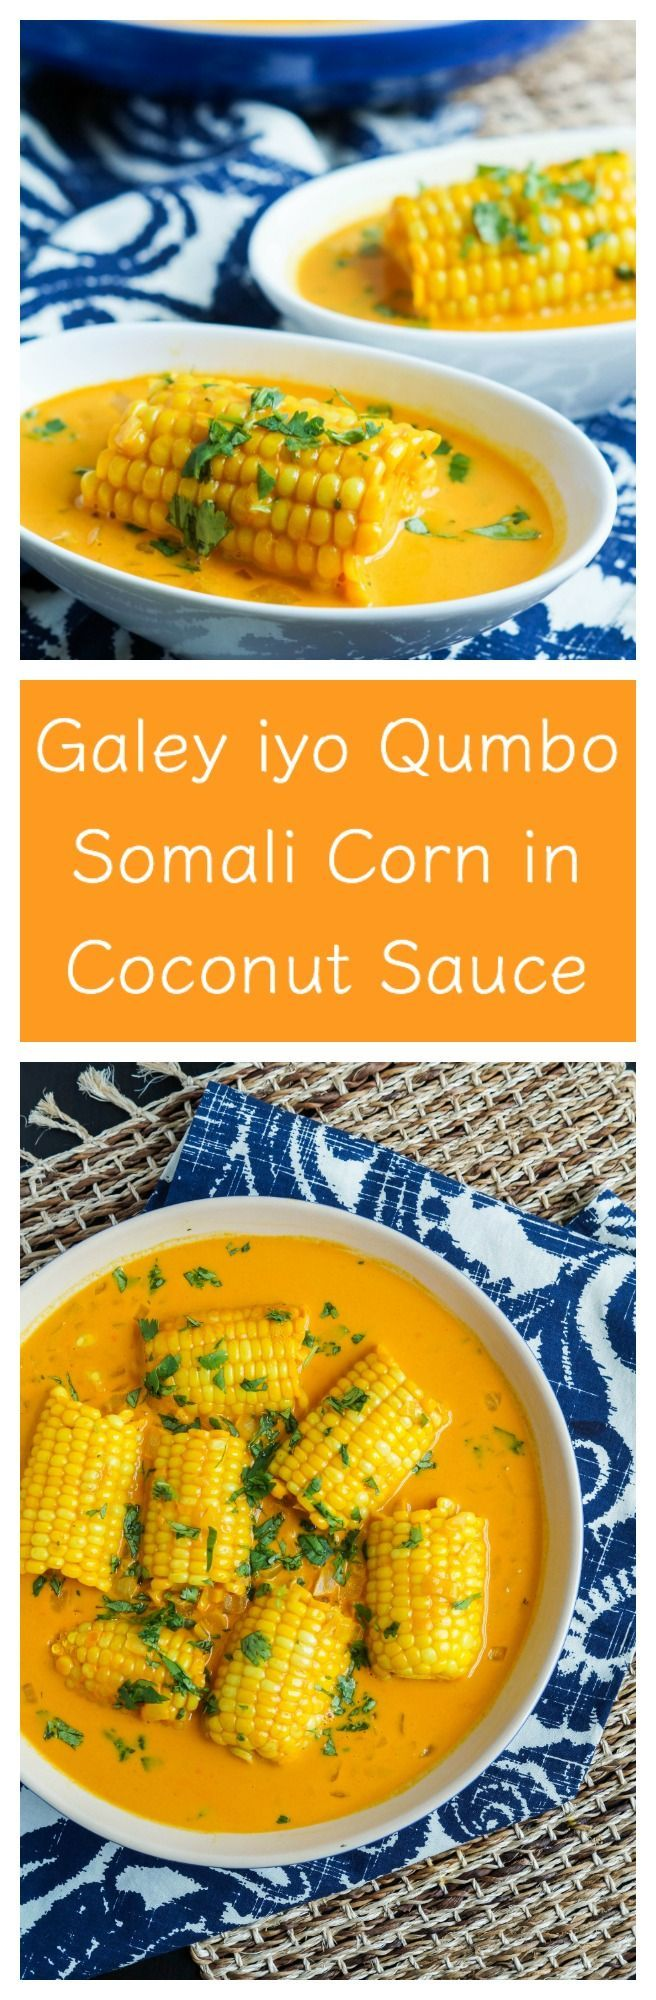 84 best african food recipes images on pinterest african recipes galey iyo qumbo somali corn in coconut sauce find this pin and more on african food recipes forumfinder Gallery